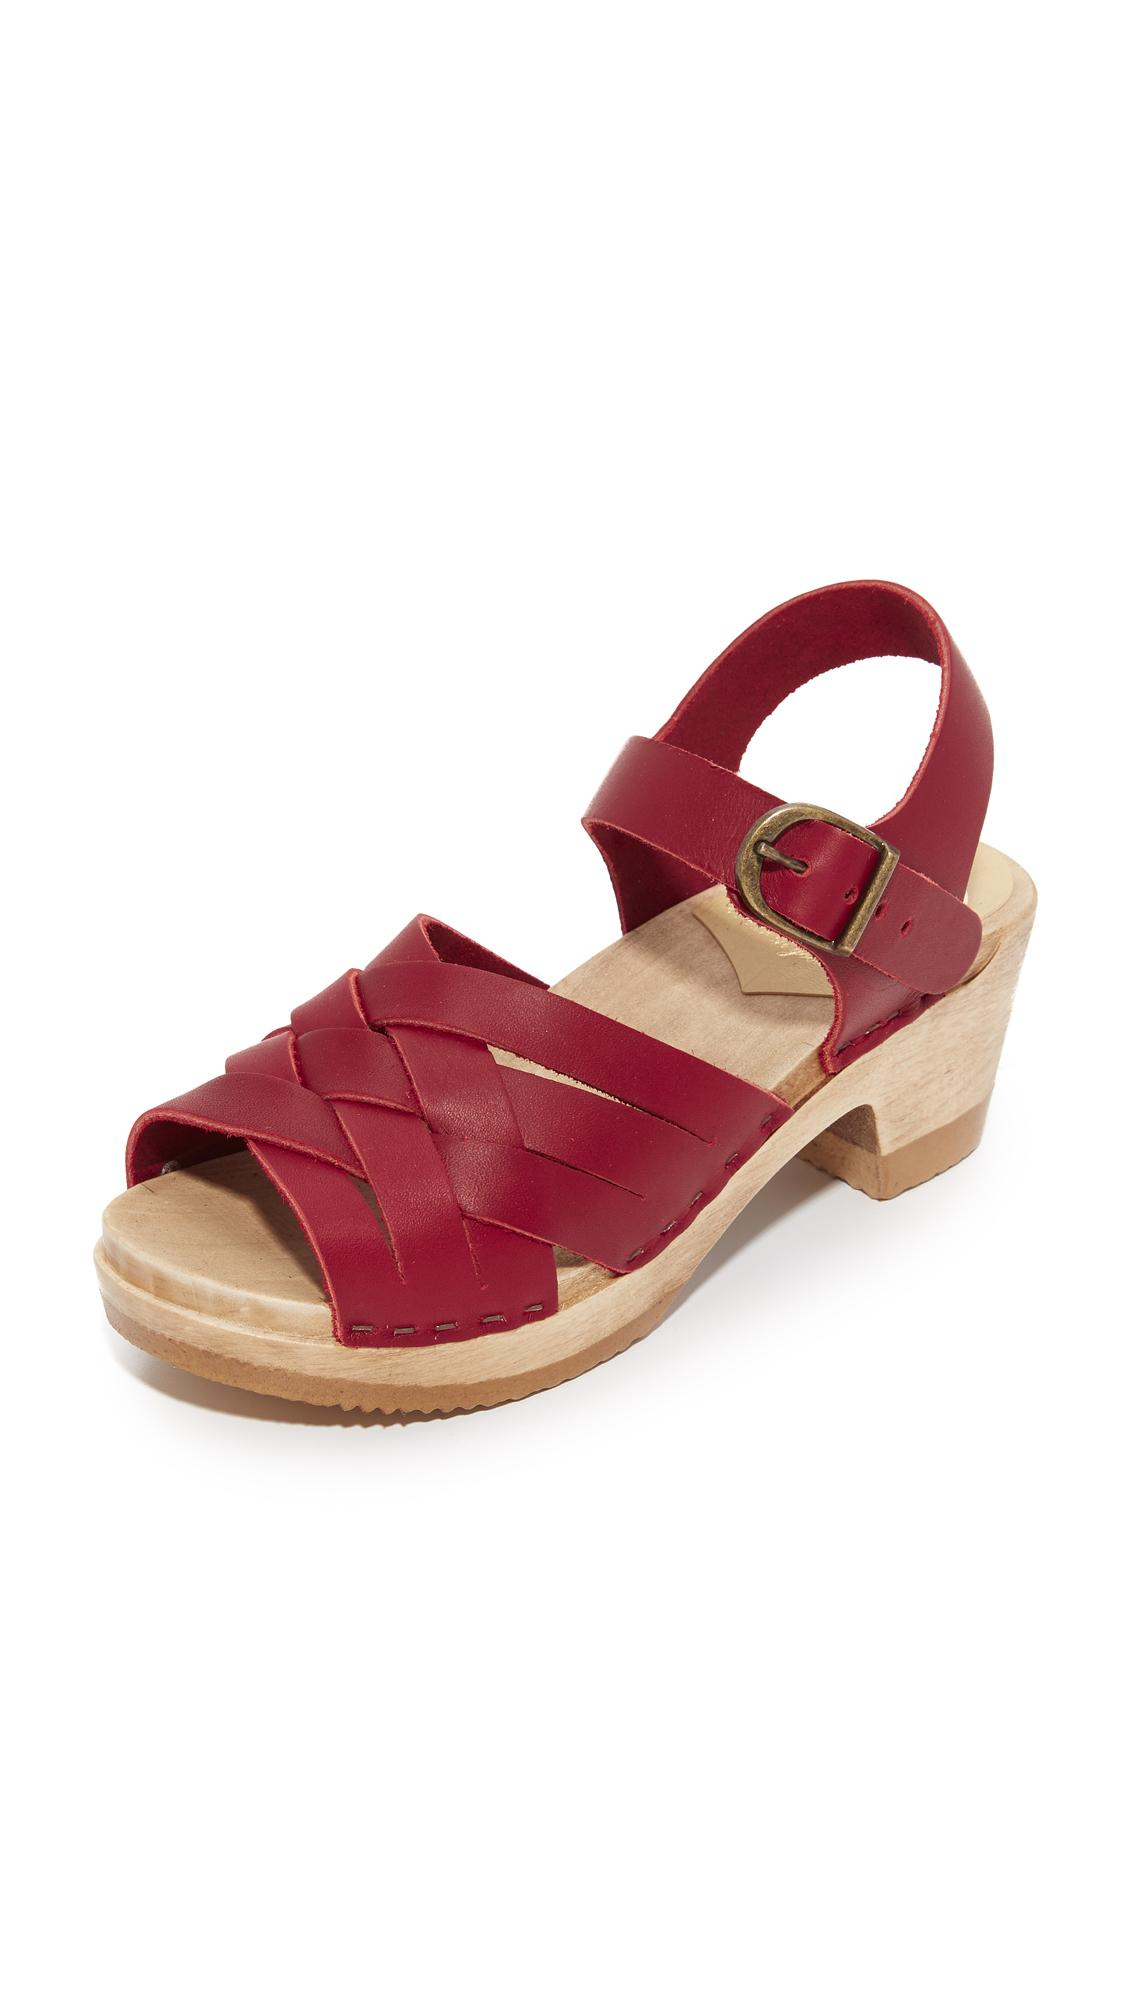 Dansko Clog Sandals